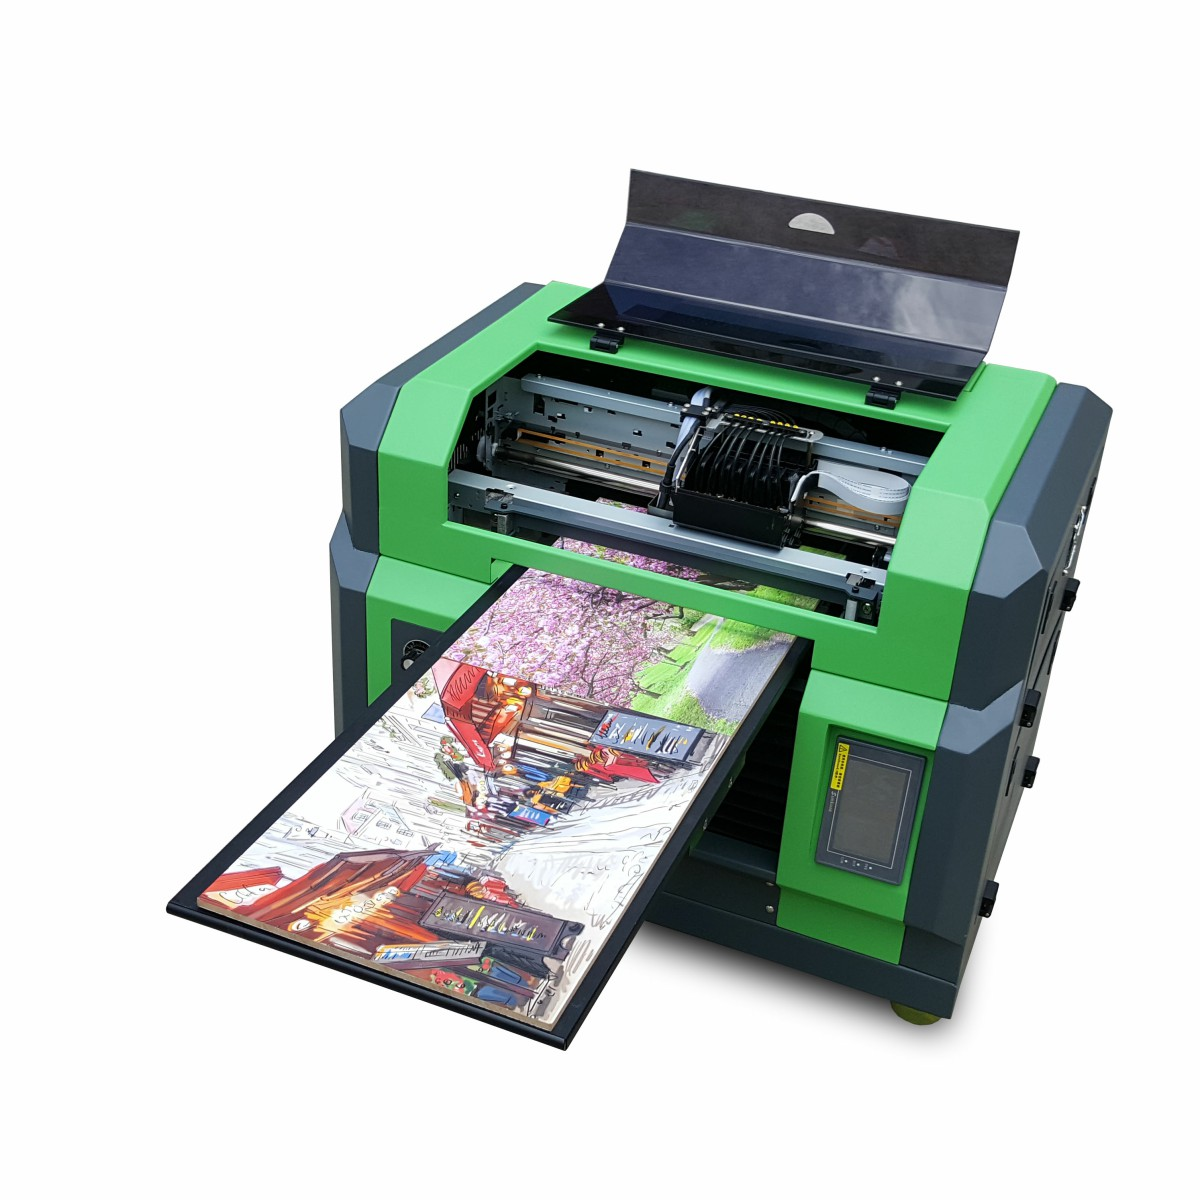 Hot Sales 3360 Dtg Printer 8 Color Digital T-shirt Direct To Garment  Printing Machine - Buy Direct To Garment Printer,T-shirt Printer,Digital  Printing